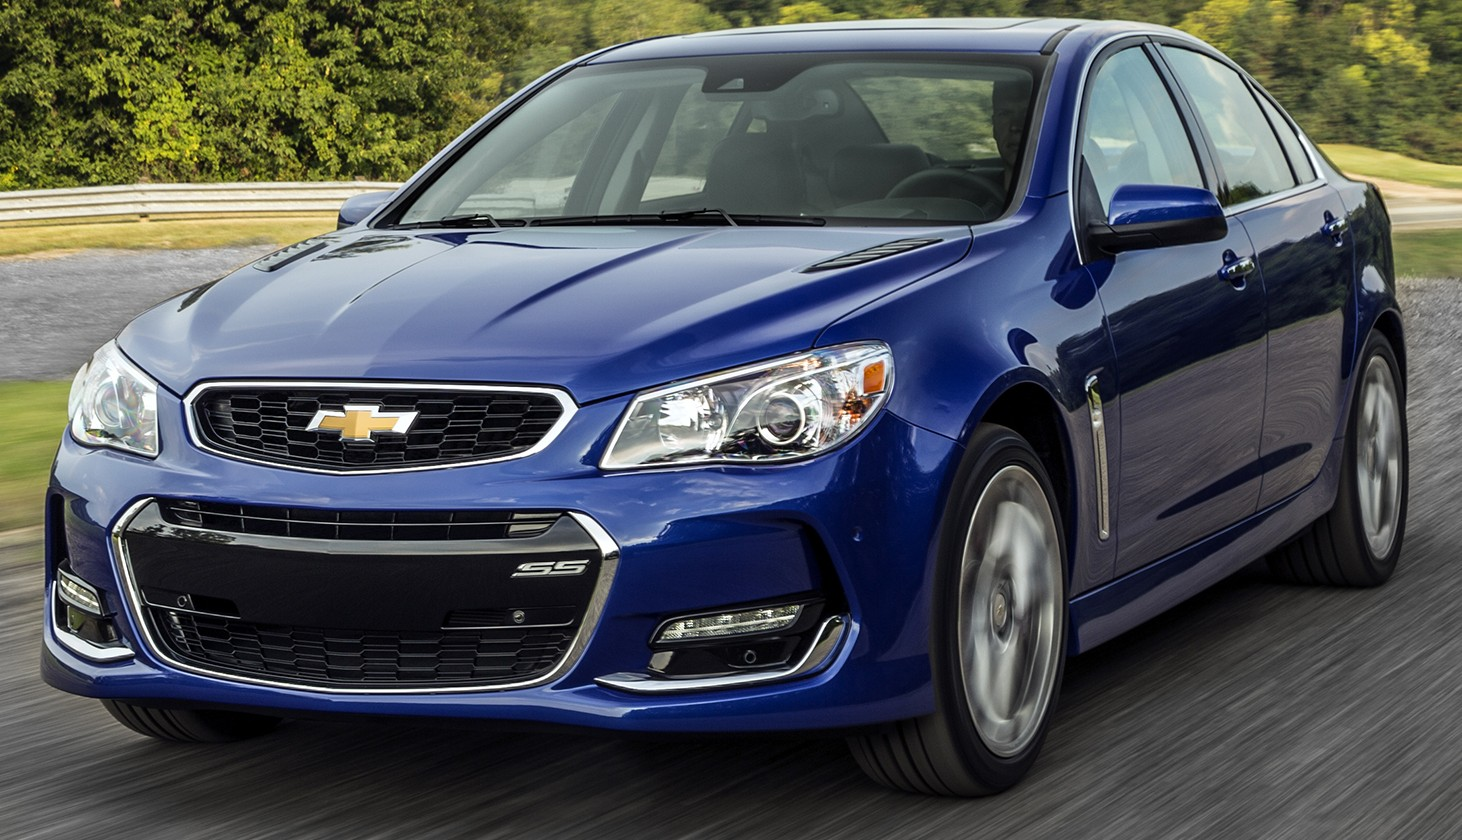 2016 chevrolet ss gets facelift and dual mode exhaust system. Black Bedroom Furniture Sets. Home Design Ideas